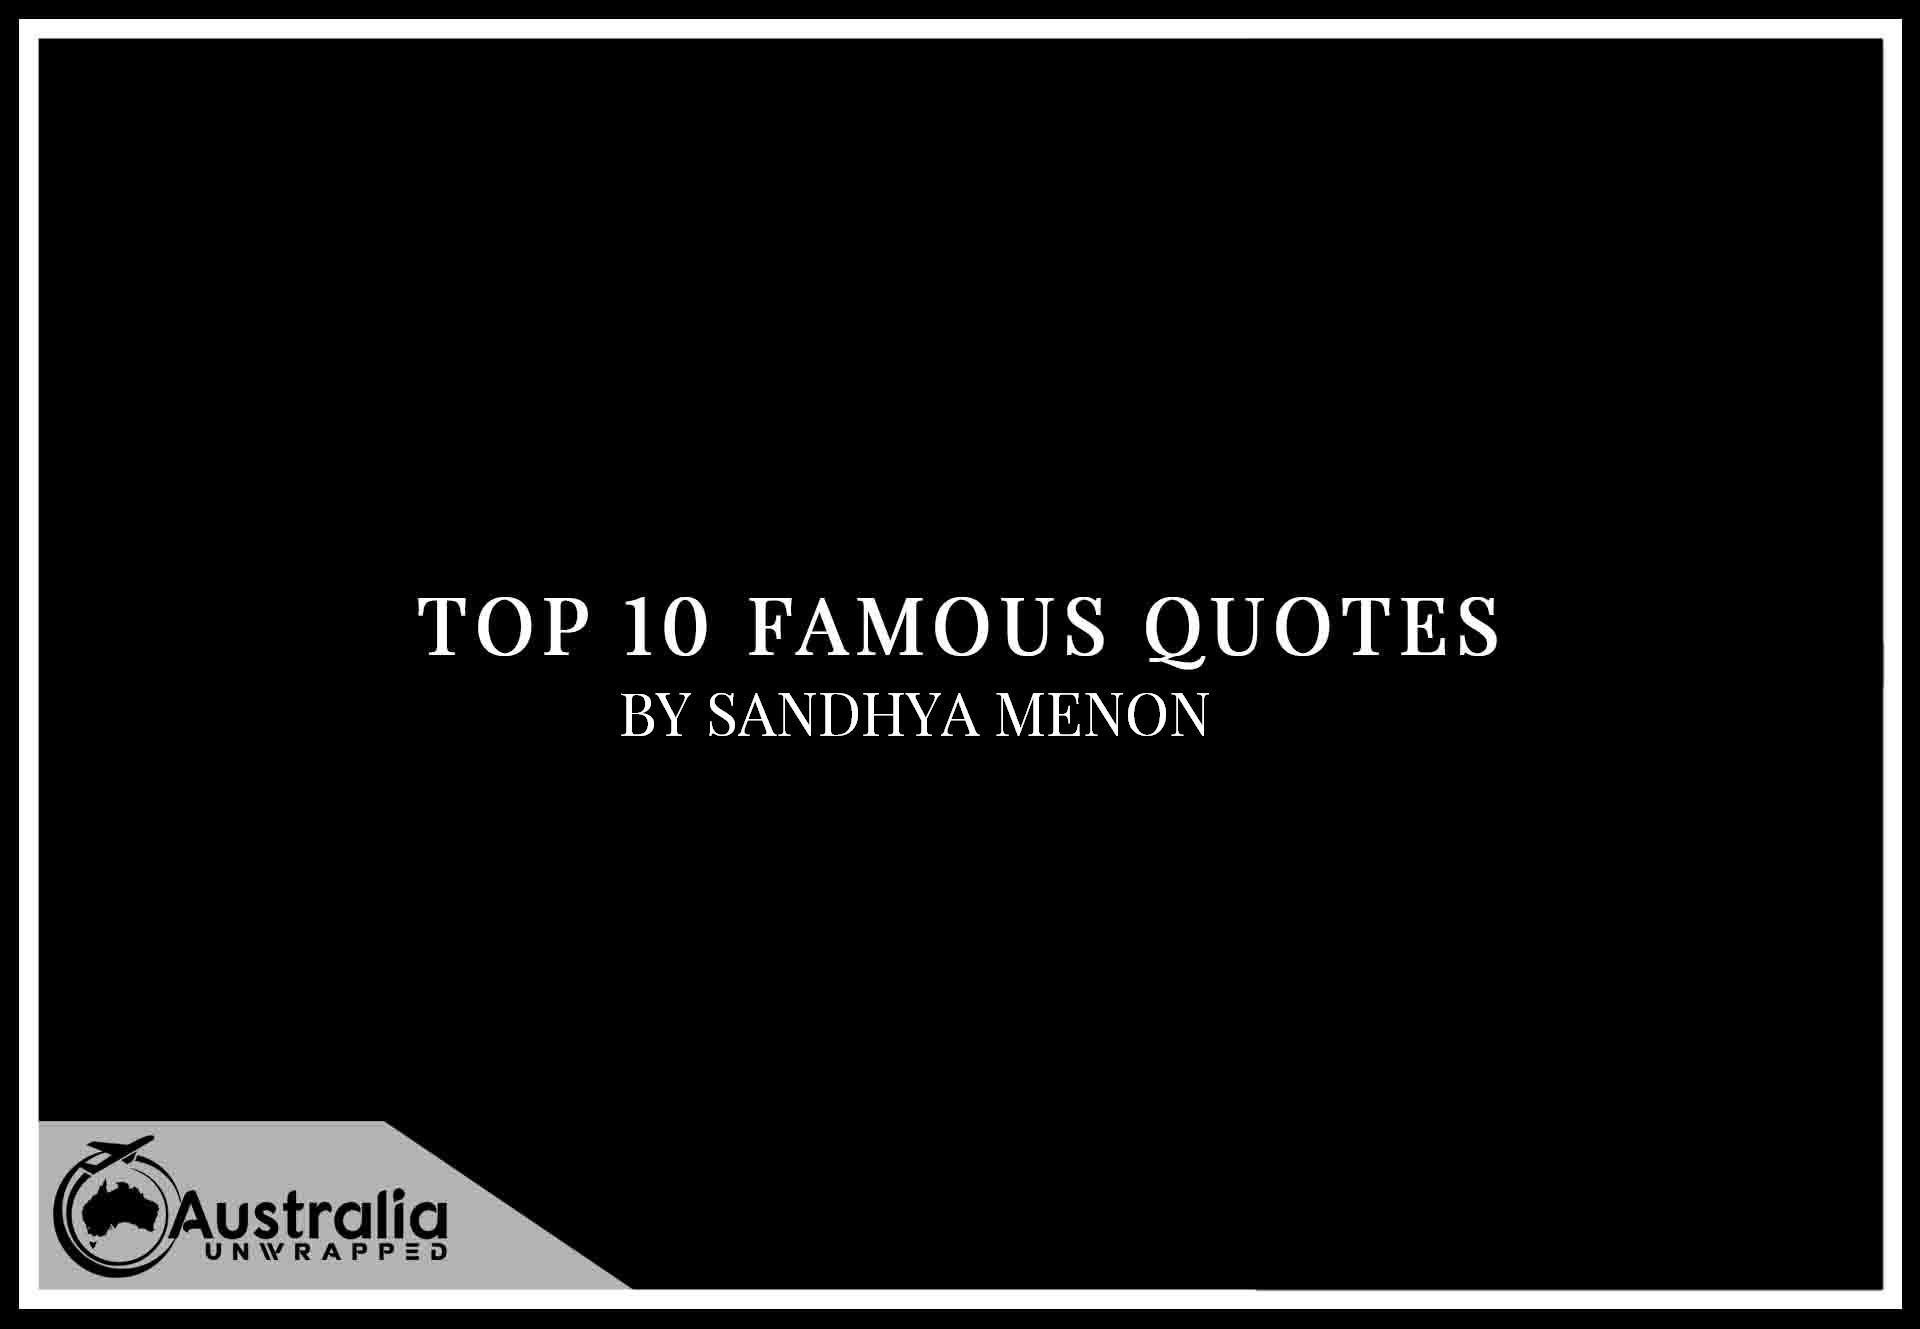 Top 10 Famous Quotes by Author Sandhya Menon